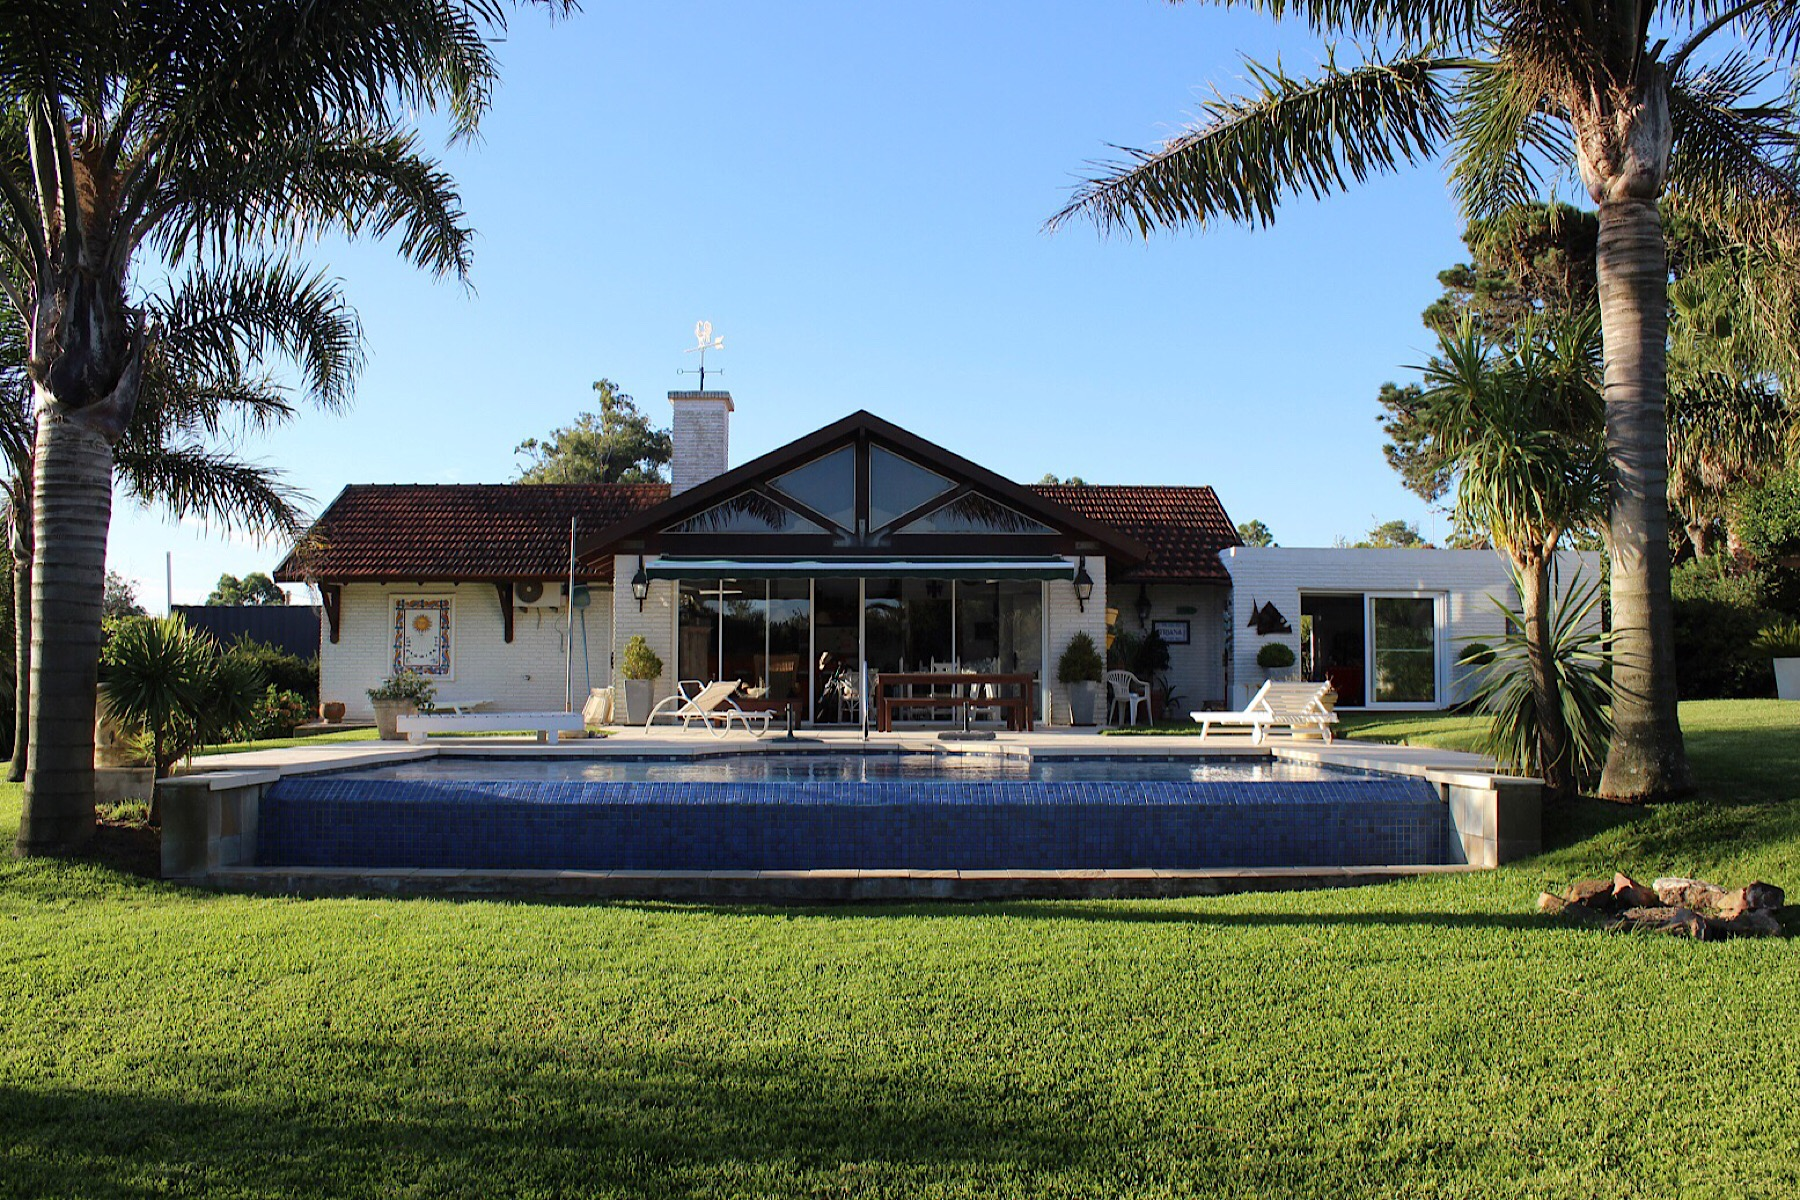 Single Family Home for sale in La Floresta Avenida sarandi Sebastian elcano, Canelones, Canelones   , Uruguay